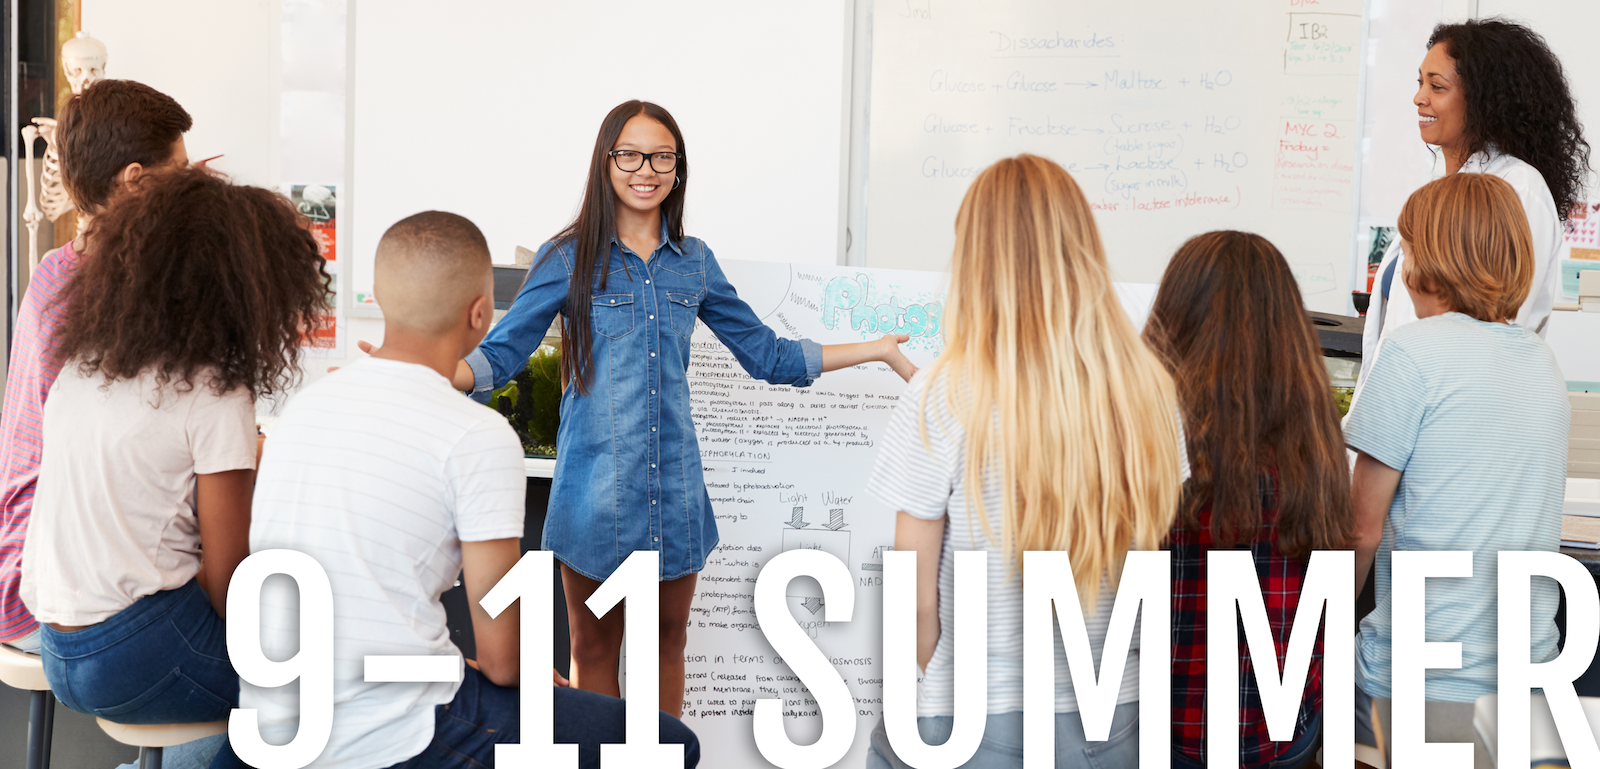 9-11 Summer Learning